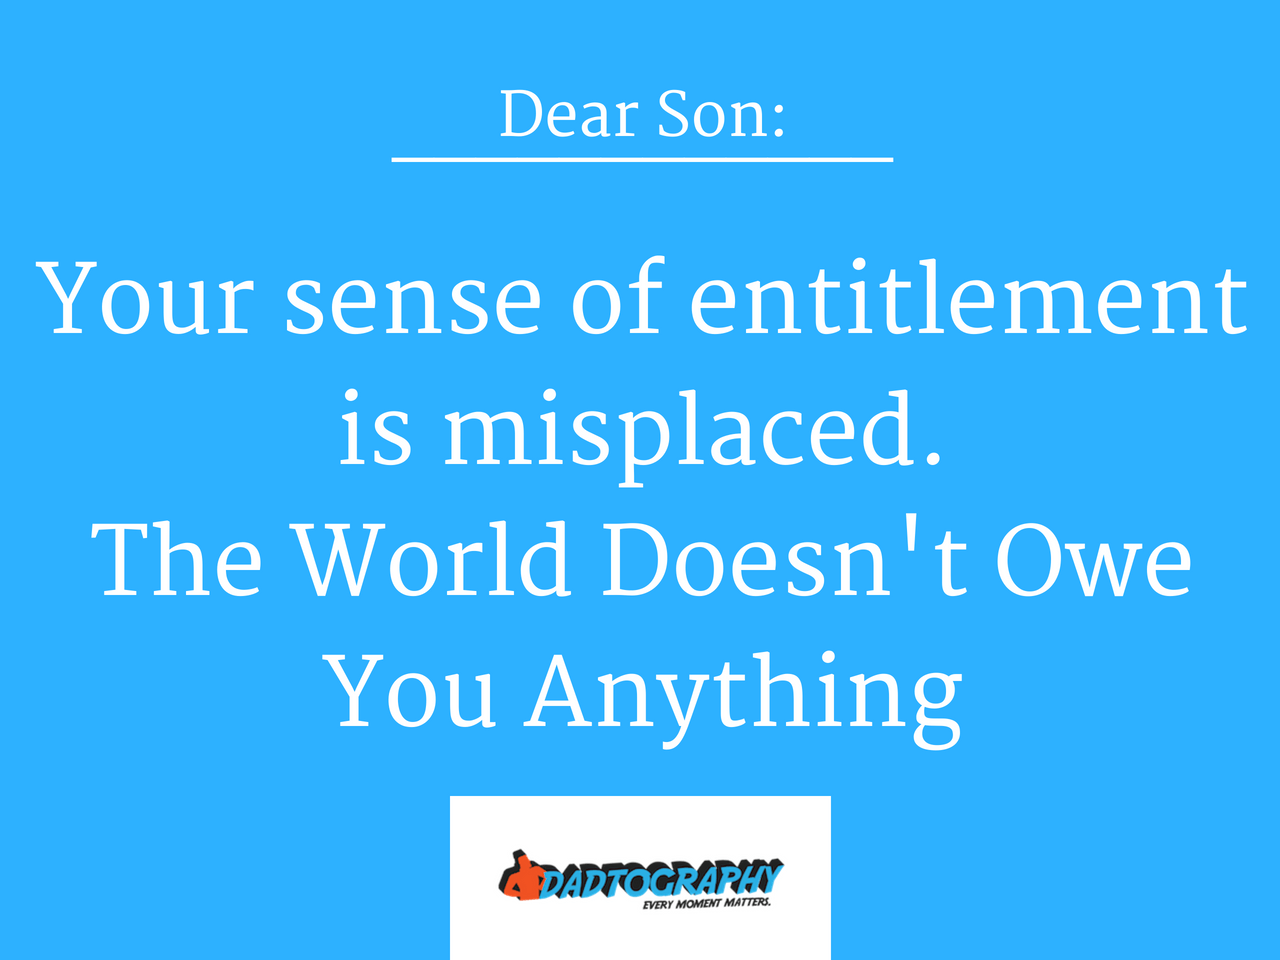 Dear Entitled Son The World Doesn't Owe You Anything